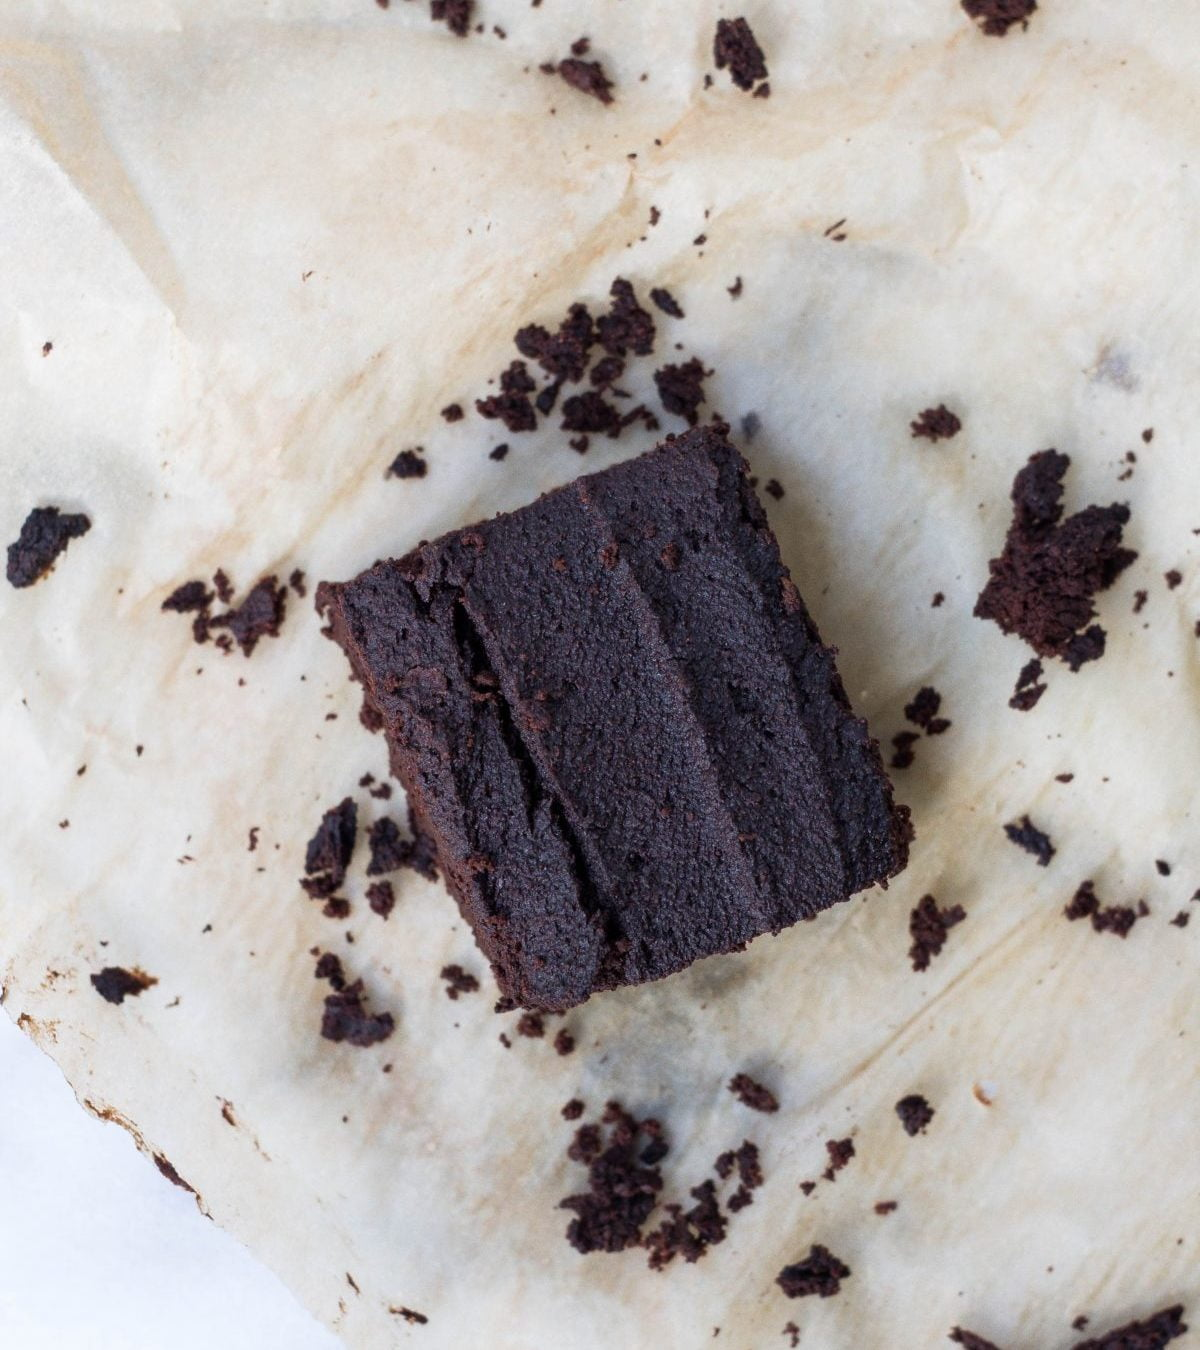 12 Days of Cooking Christmas: Zucchini and Chocolate Cake